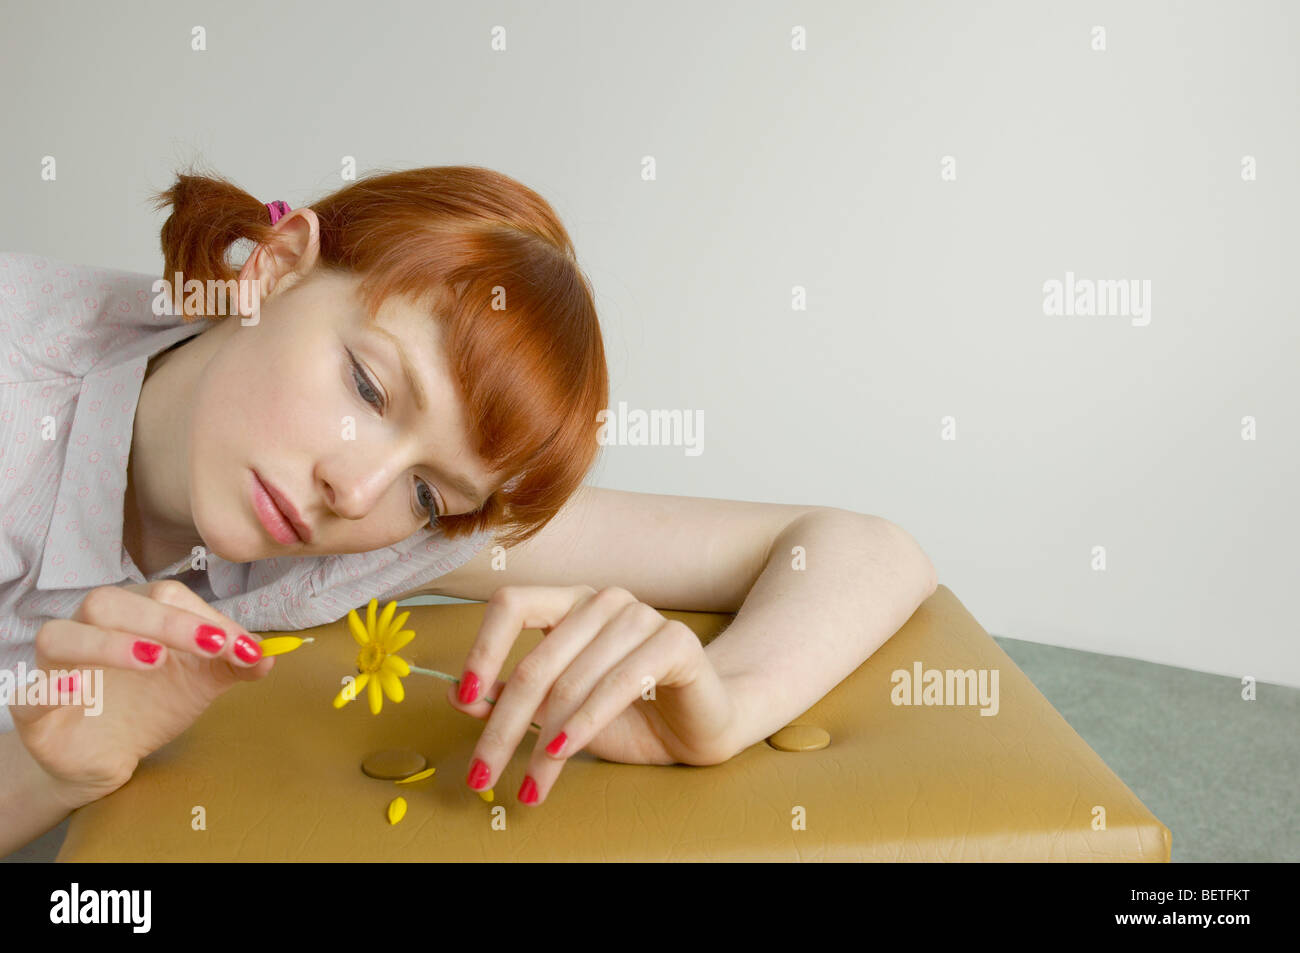 woman pulling petals from daisy Stock Photo